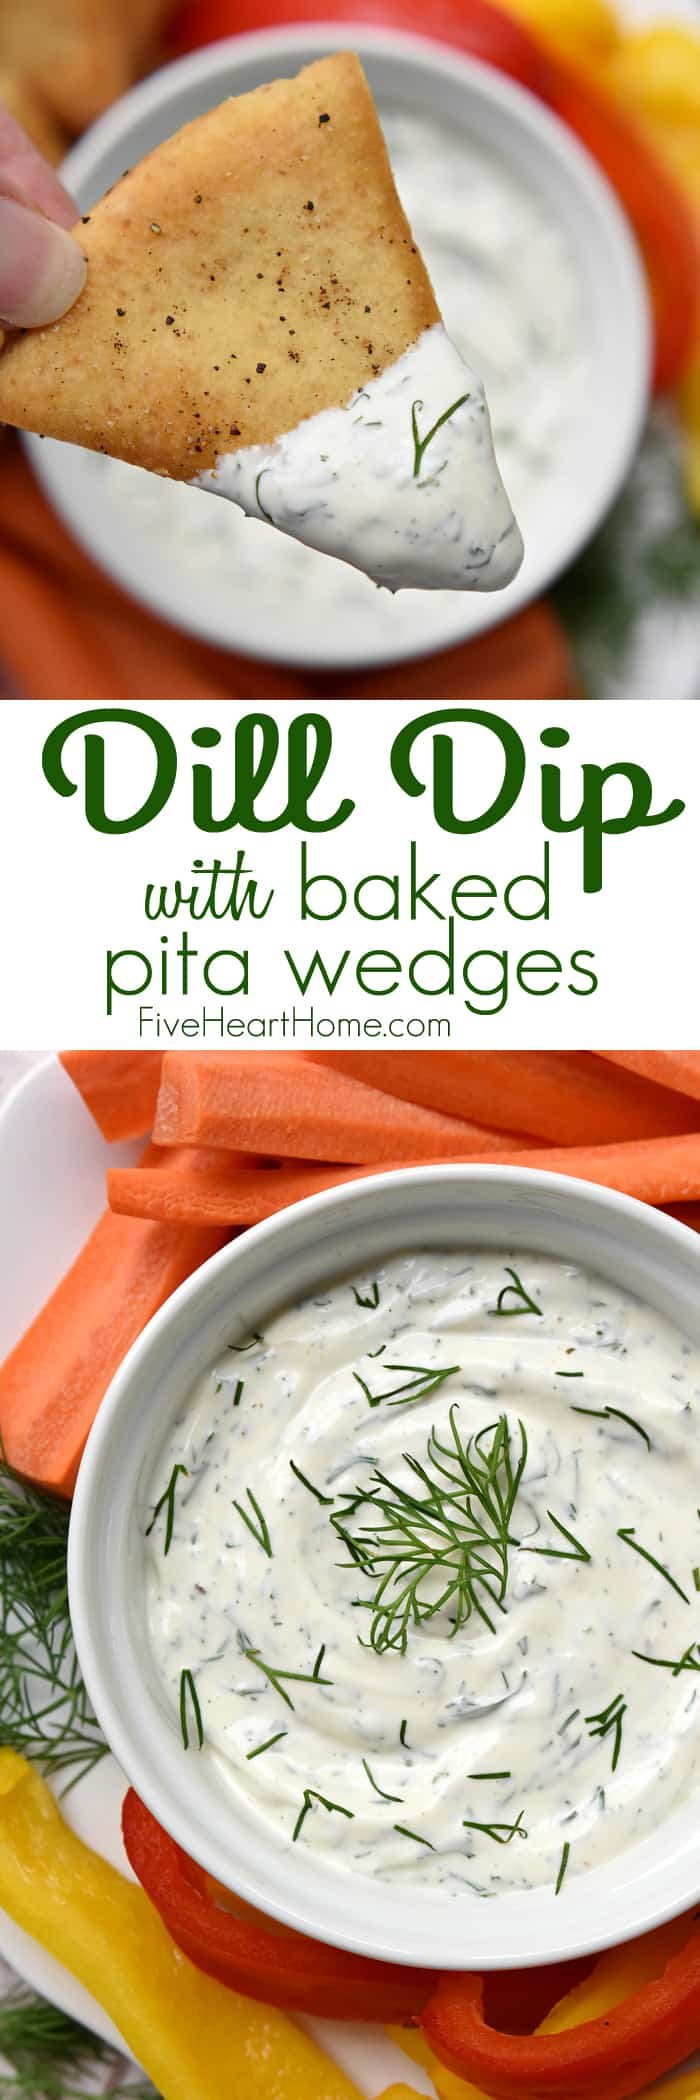 Dreamy Dill Dip with Baked Pita Wedges Collage with Text Overlay